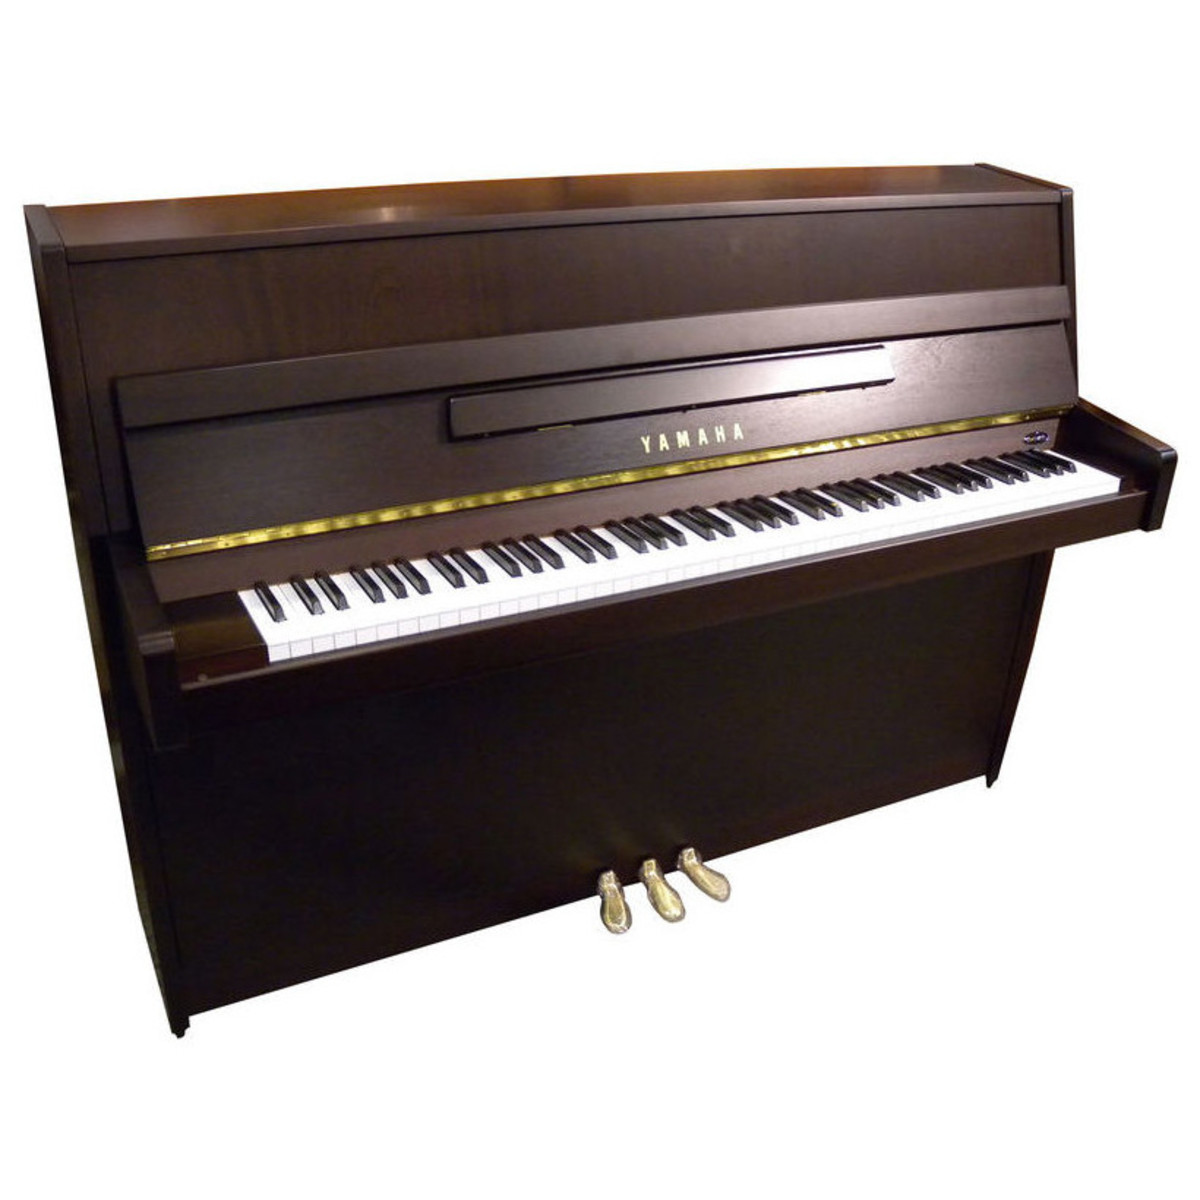 Yamaha b1 upright acoustic piano dark walnut satin at for Yamaha piano com